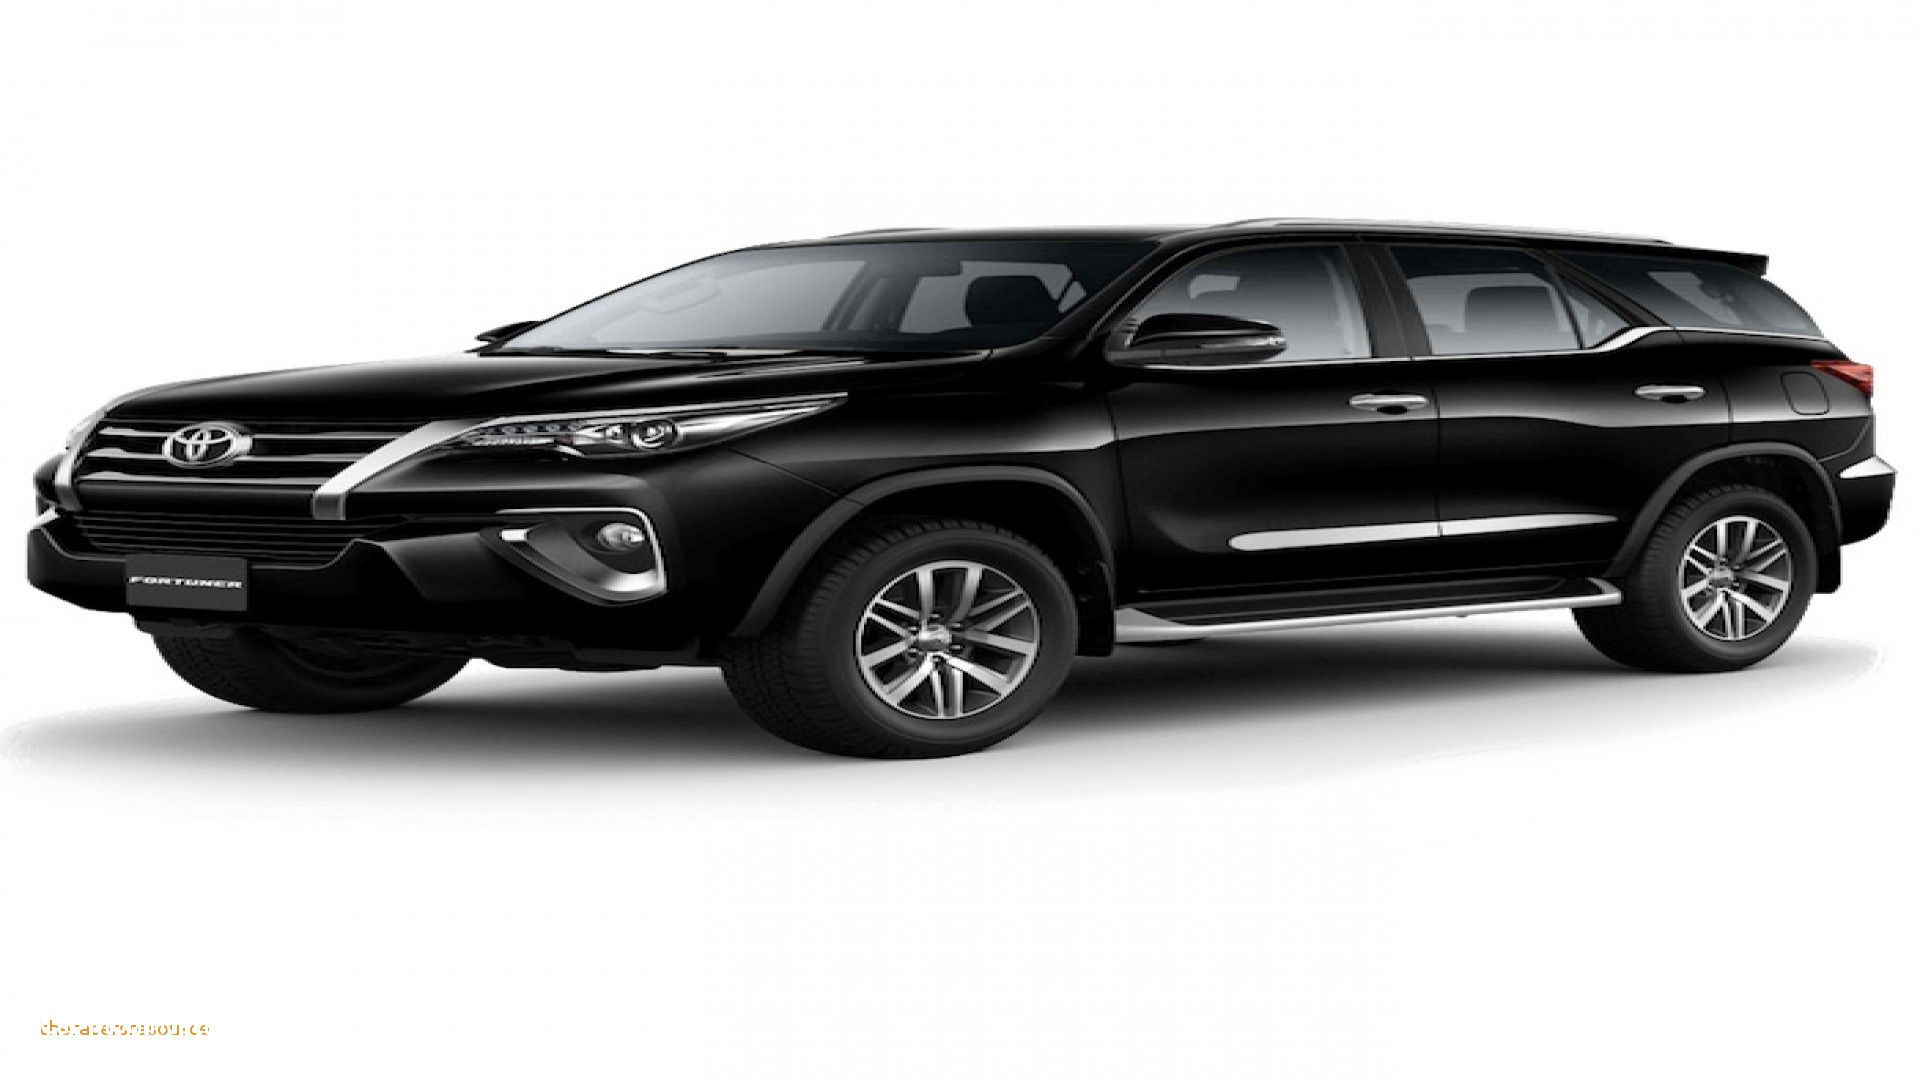 Toyota Fortuner Wallpaper Hd Wallpapers backgrounds Download 1920x1080